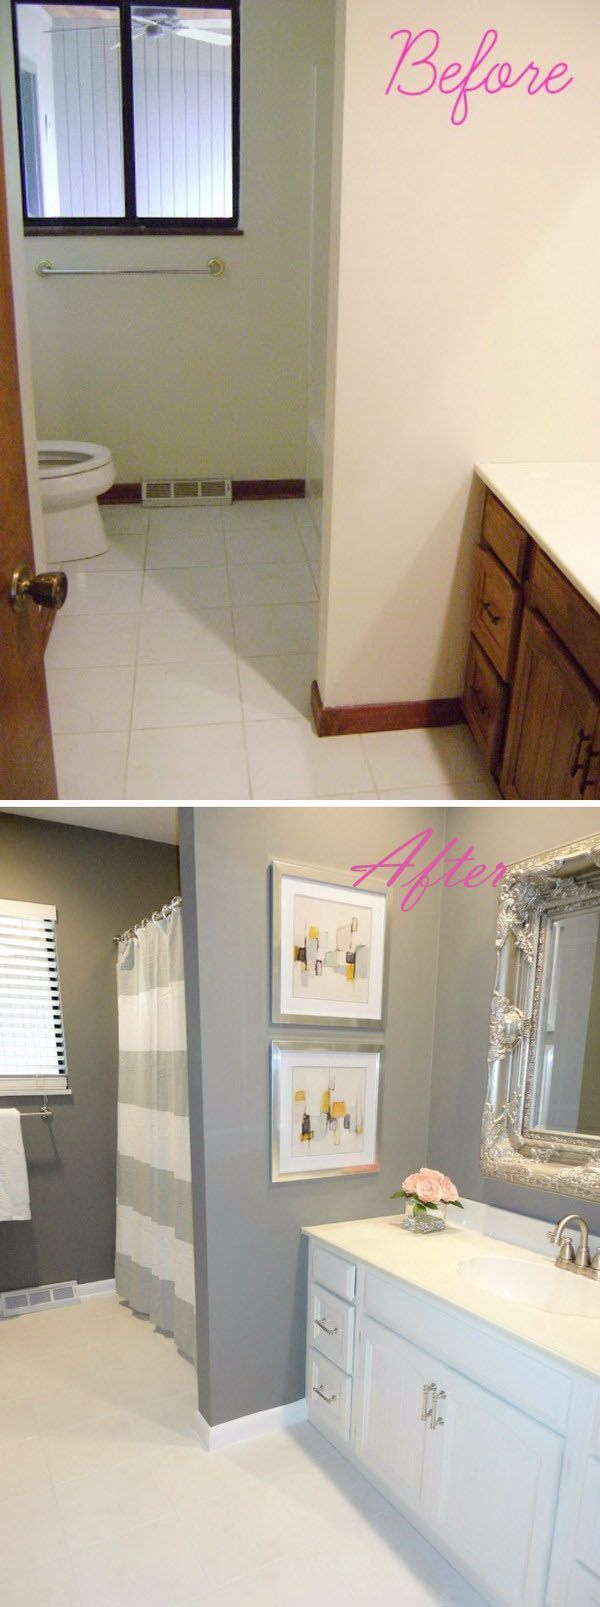 Bathroom Walls Ideas best 20+ painting bathroom walls ideas on pinterest | bathroom